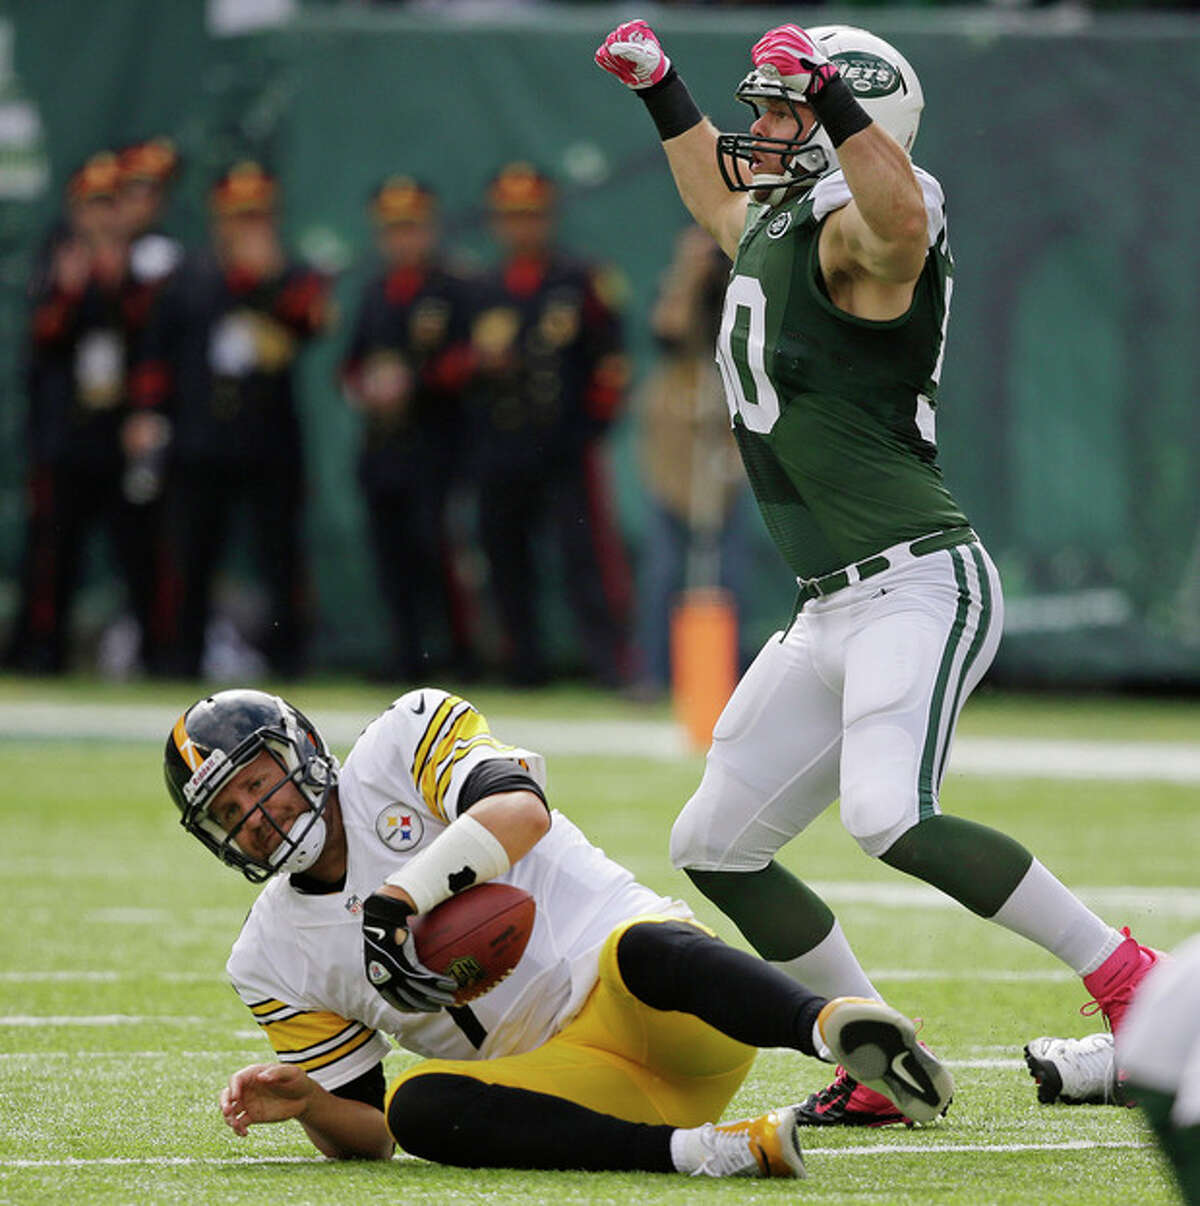 New York Jets outside linebacker Garrett McIntyre (50) reacts after sacking Pittsburgh Steelers quarterback Ben Roethlisberger (7) during the first half of an NFL football game Sunday, Oct. 13, 2013, in East Rutherford, N.J. (AP Photo/Seth Wenig)